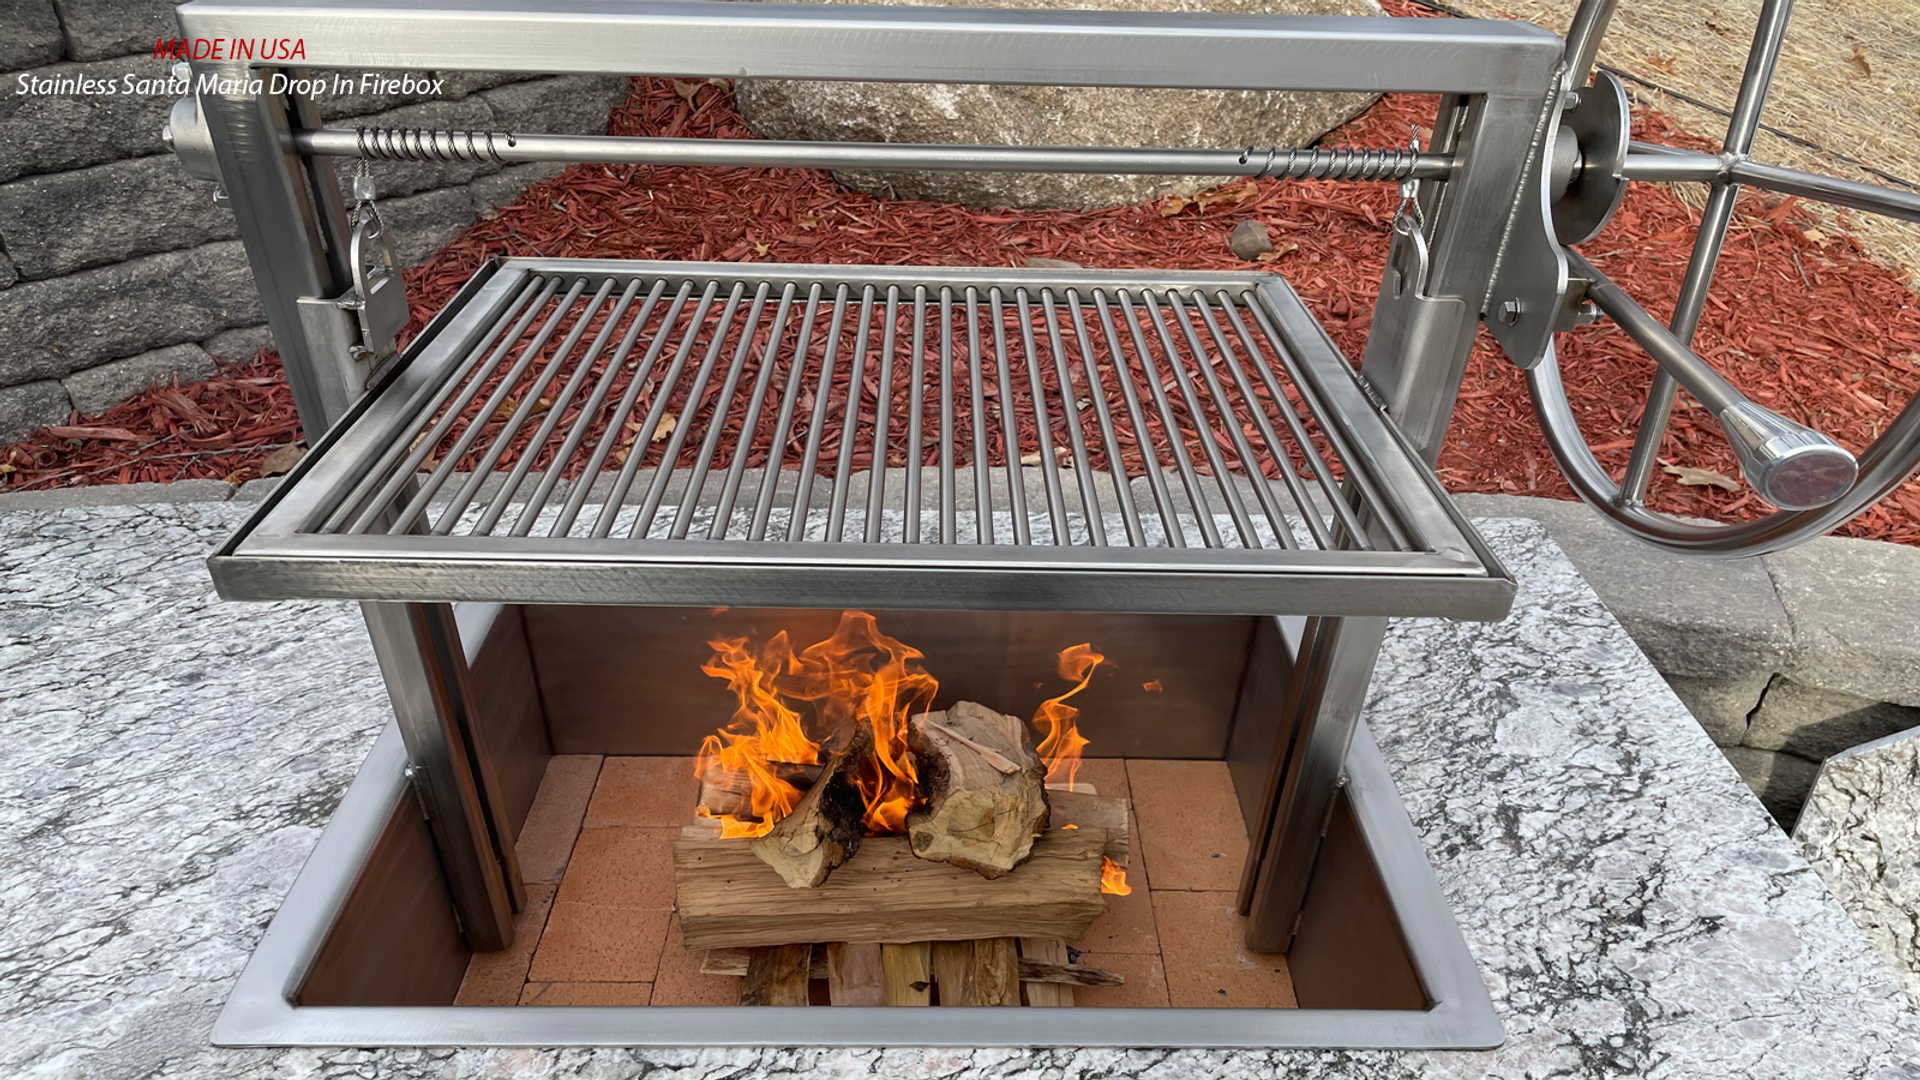 Stainless Santa Maria Drop In firebox with height adjustable grill grate installed in outdoor kitchen island